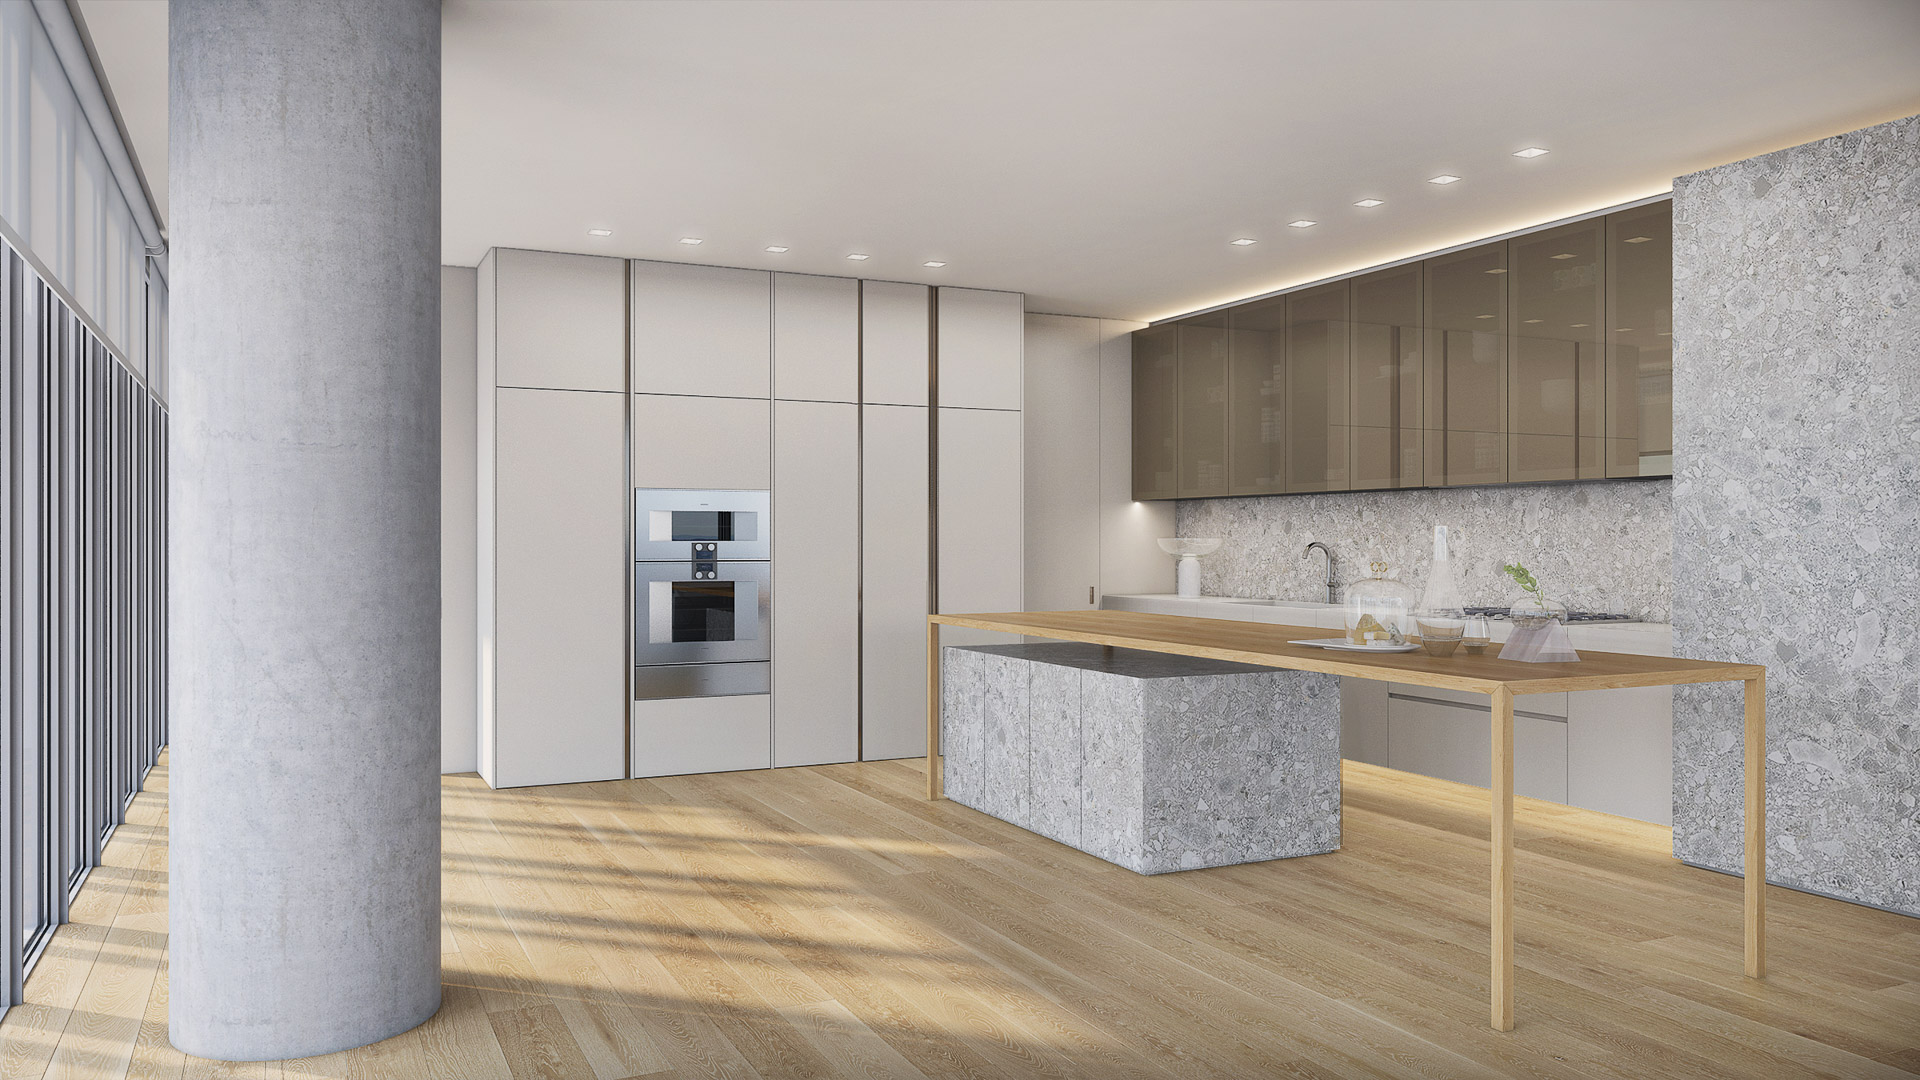 555_Condo_A_Kitchen_Var2_102017